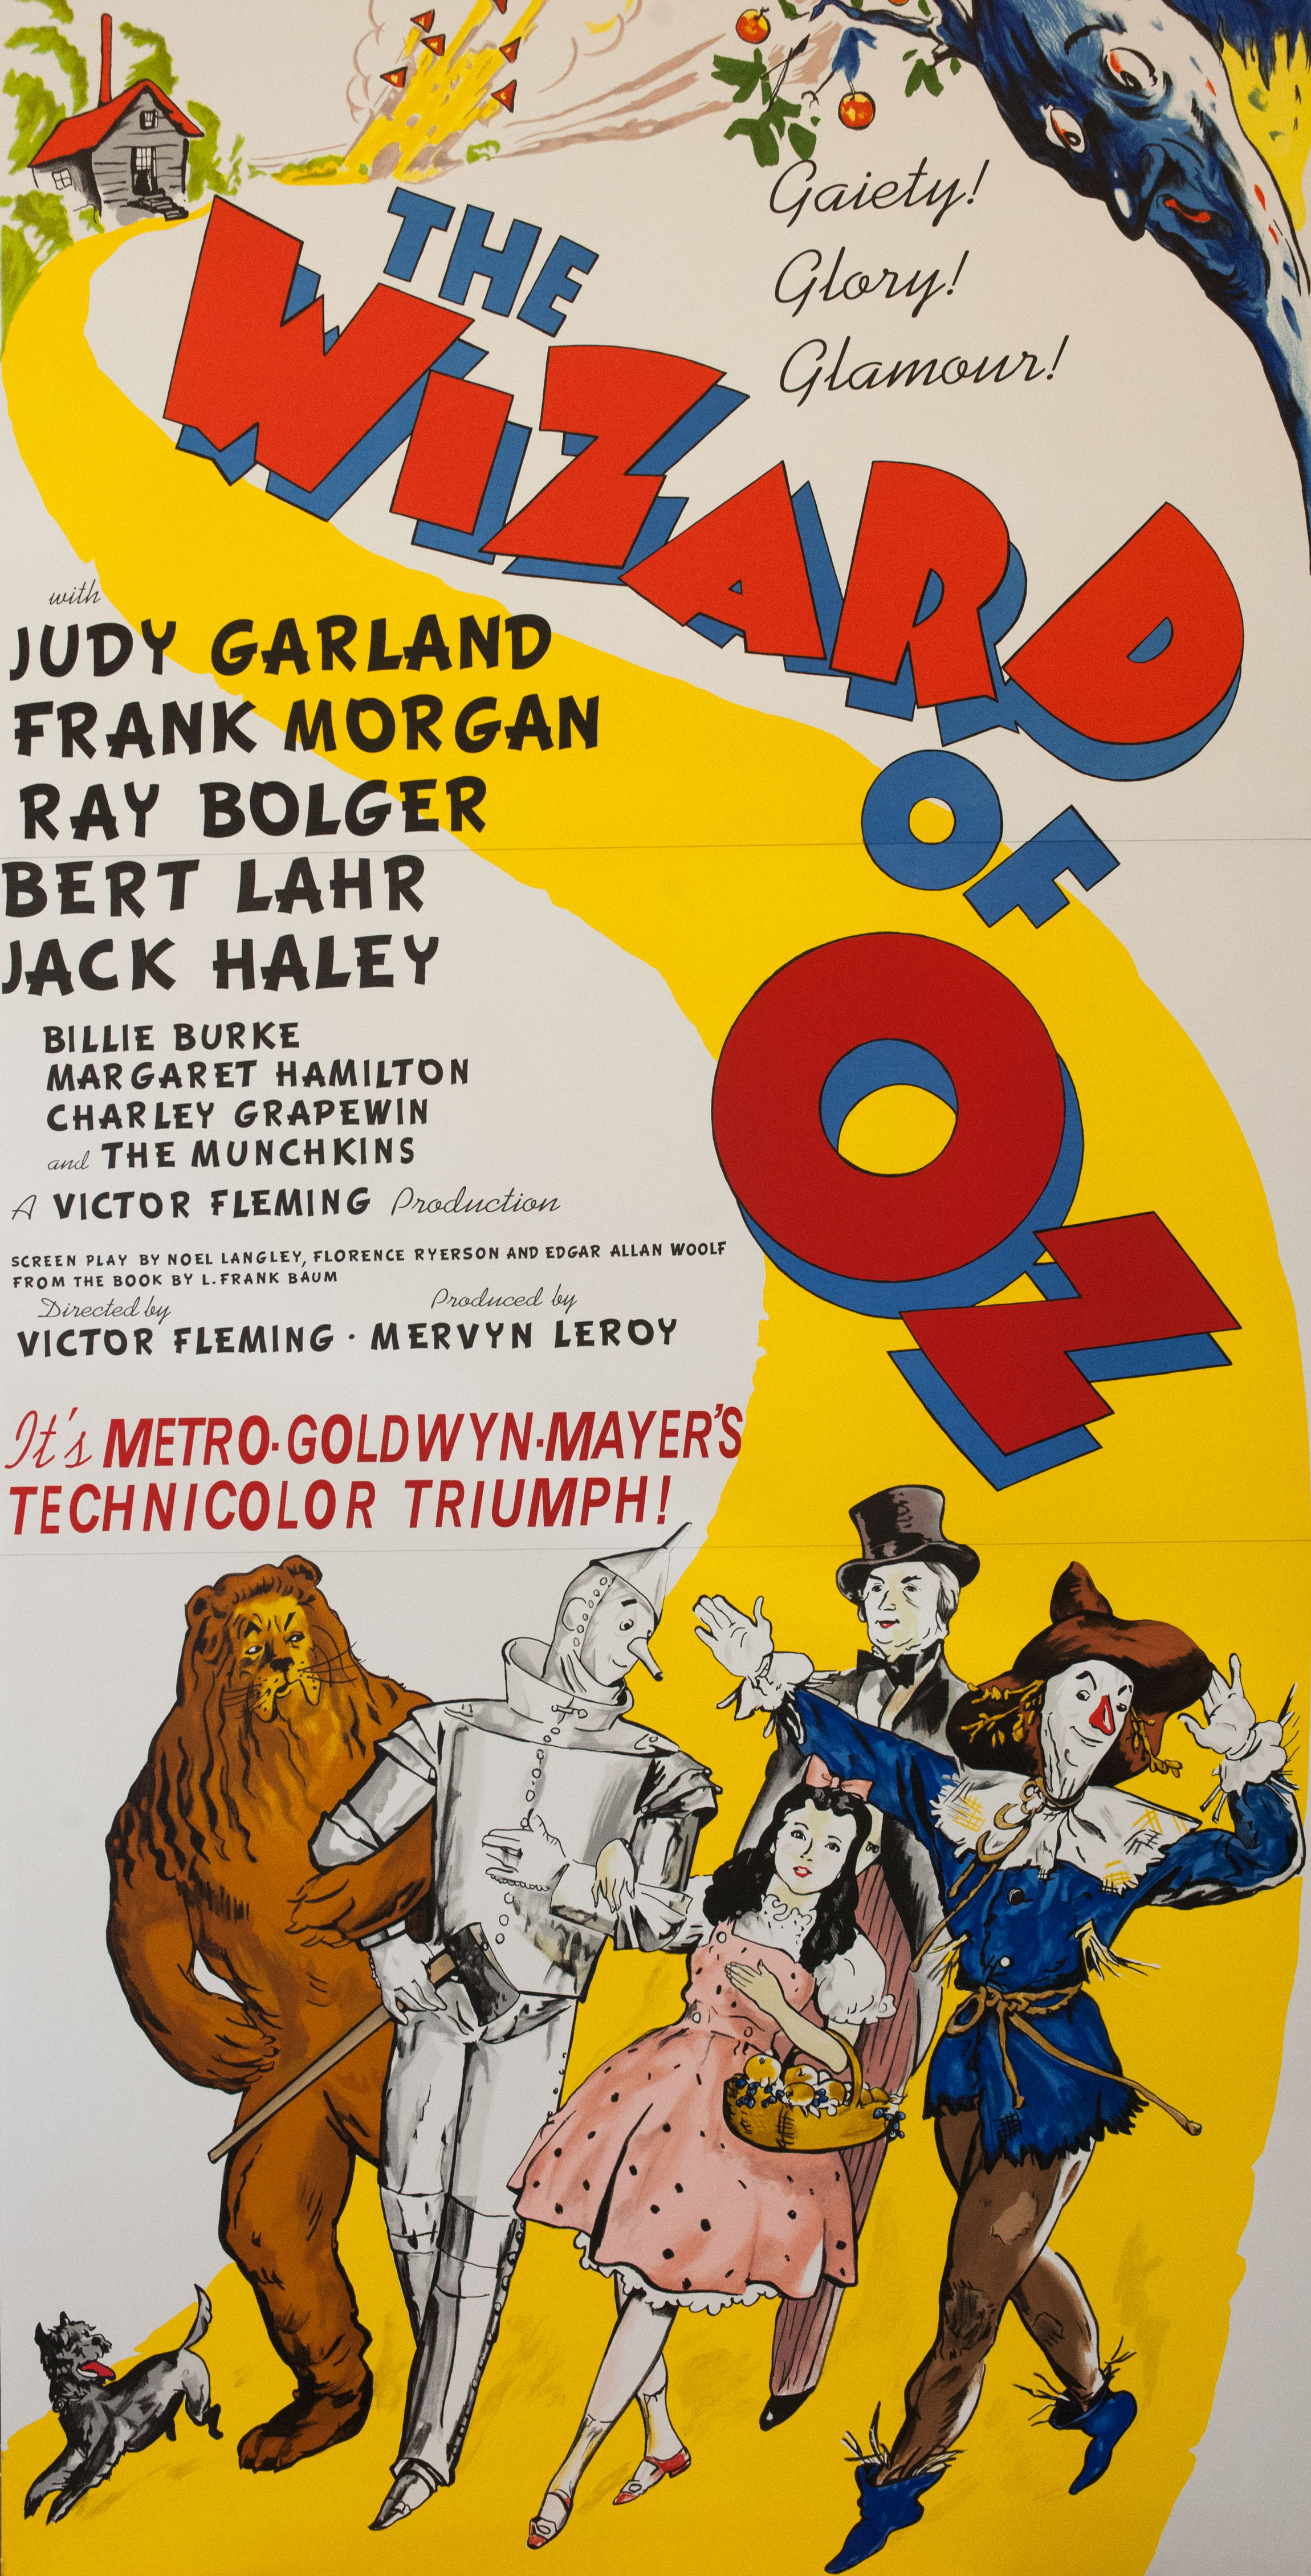 Dorothy Toto Tin Man Scarecrow Cowardly Lion Judy Garland The Wizard of Oz classic movie poster vintage movie poster fine art lithograph one-sheet golden age of film